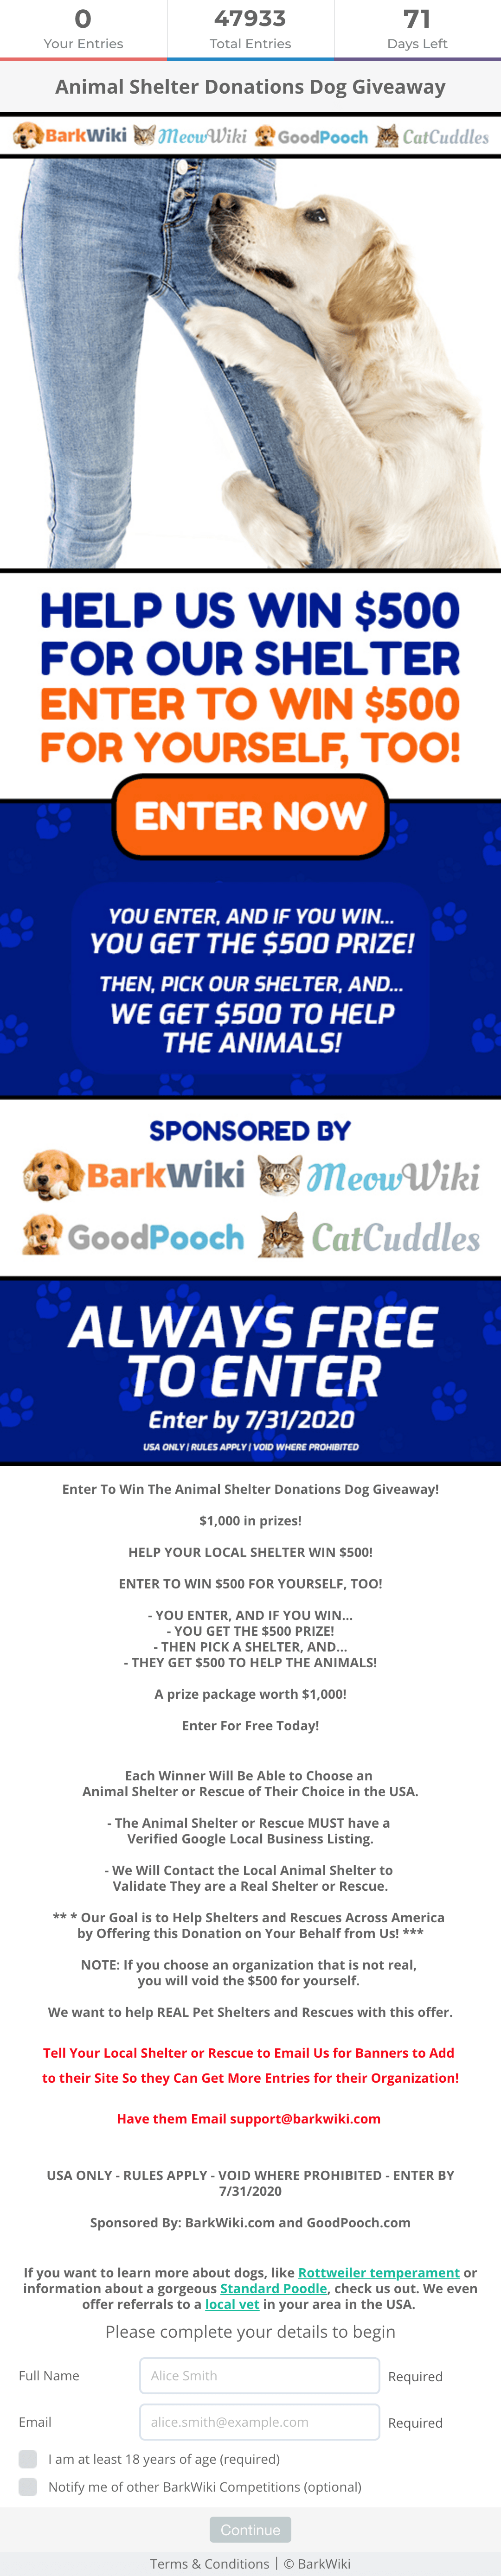 BarkWiki's Animal Shelter Donation giveaway campaign